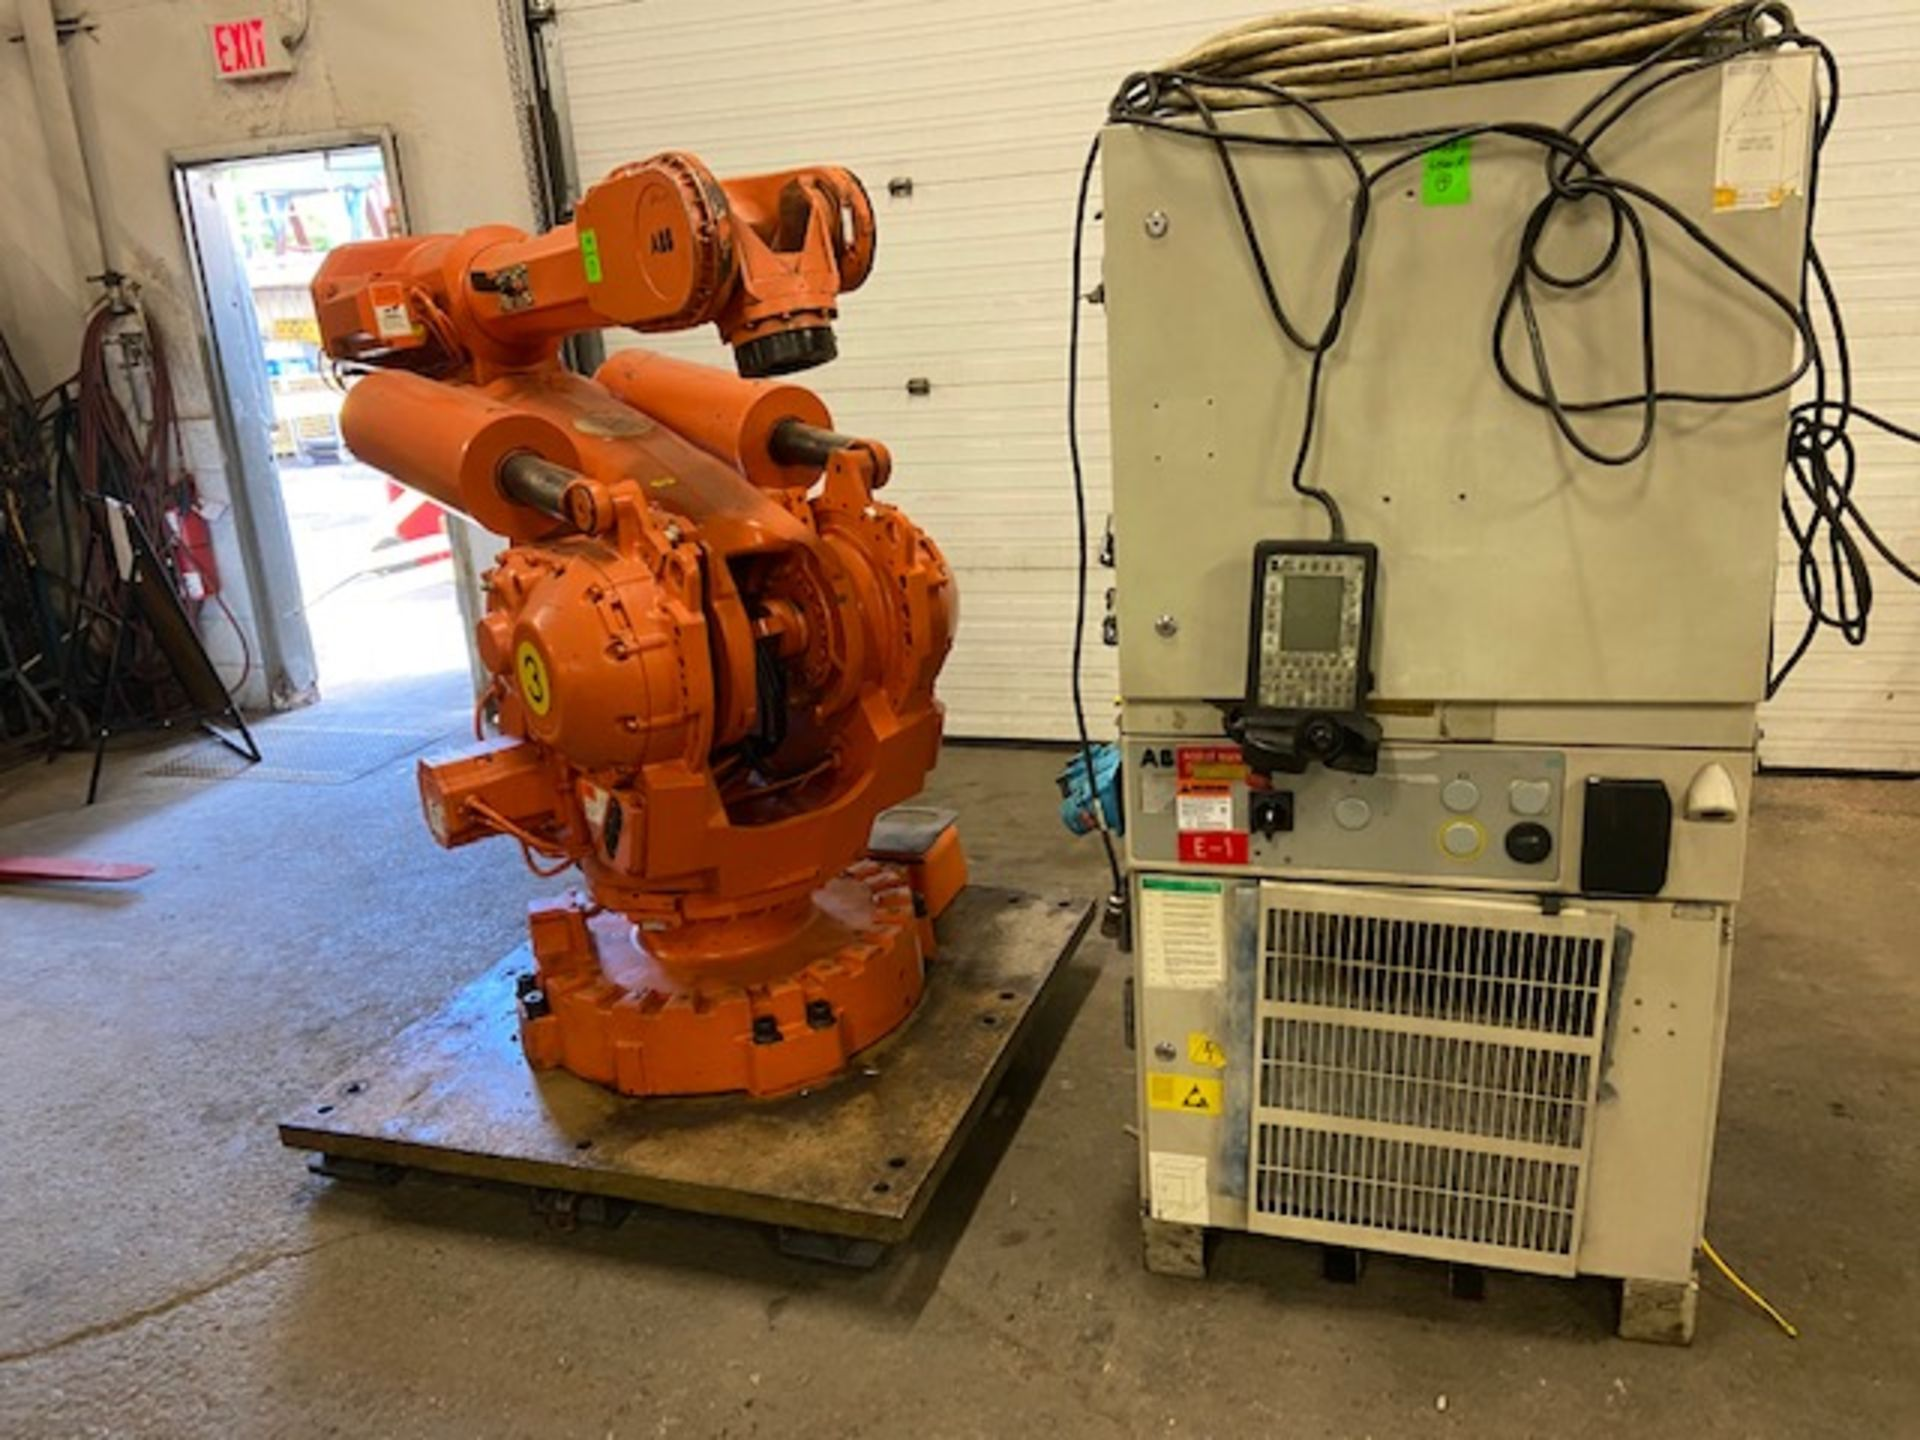 2008 ABB IRB 6400R Robotic Material Handler Package w/ Controller and end of arm tooling - Image 3 of 3